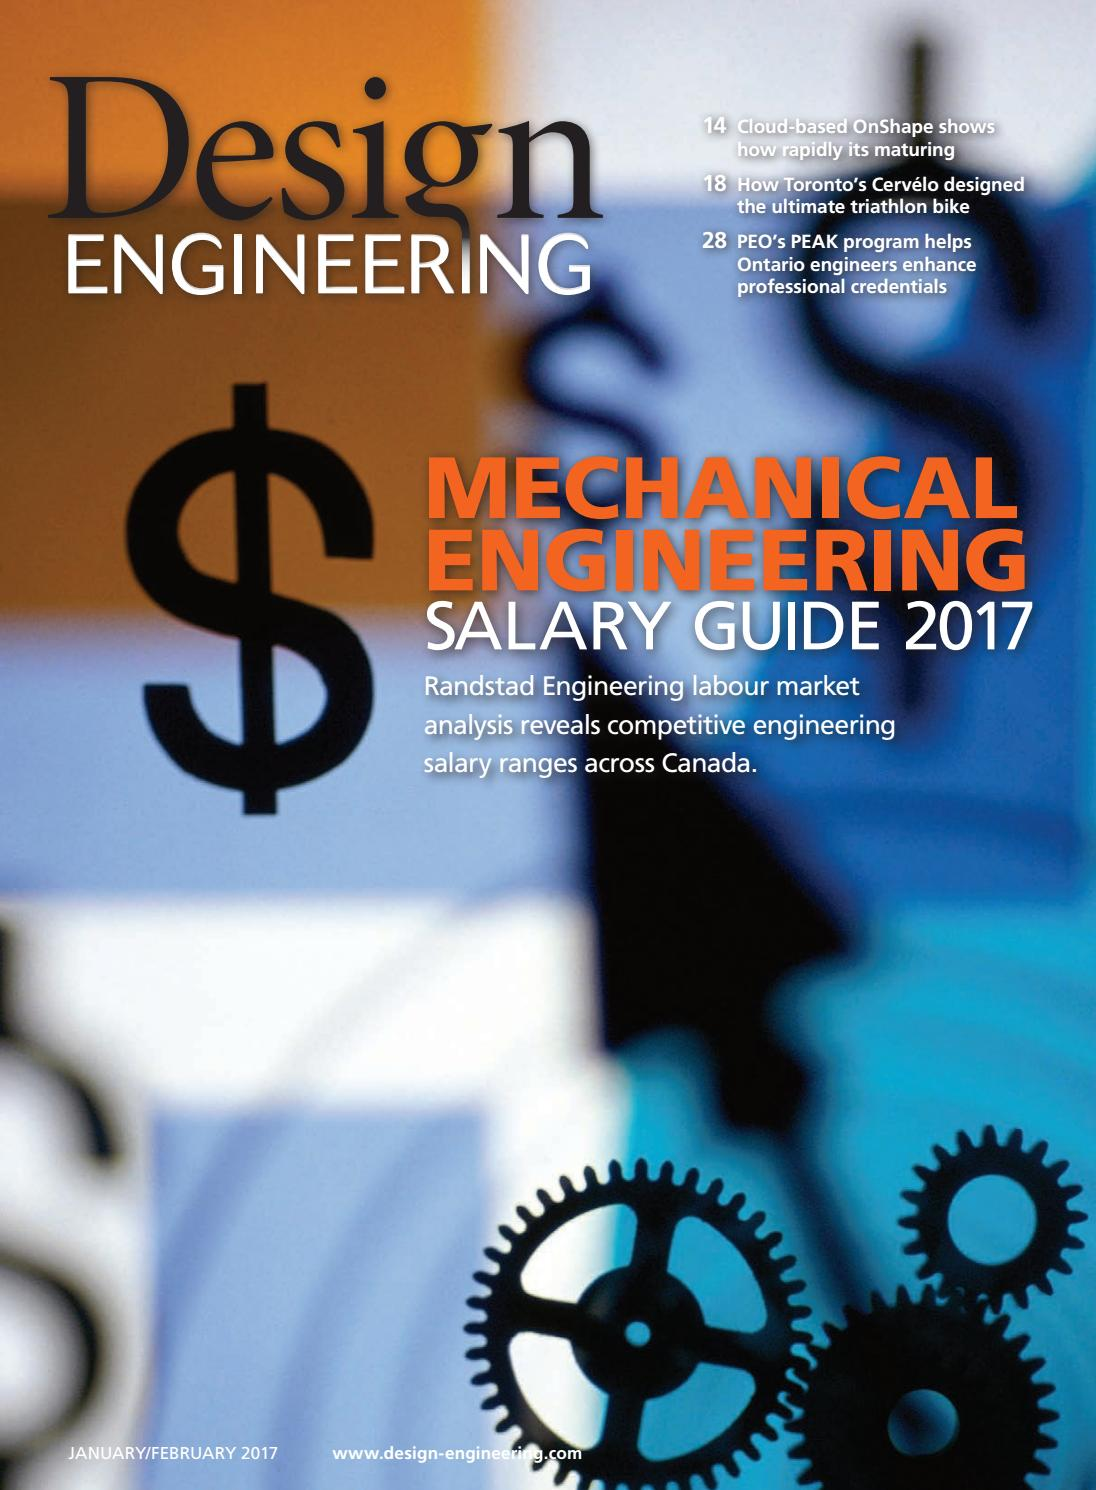 Design Engineering JanuaryFebruary 2017 by Annex Newcom